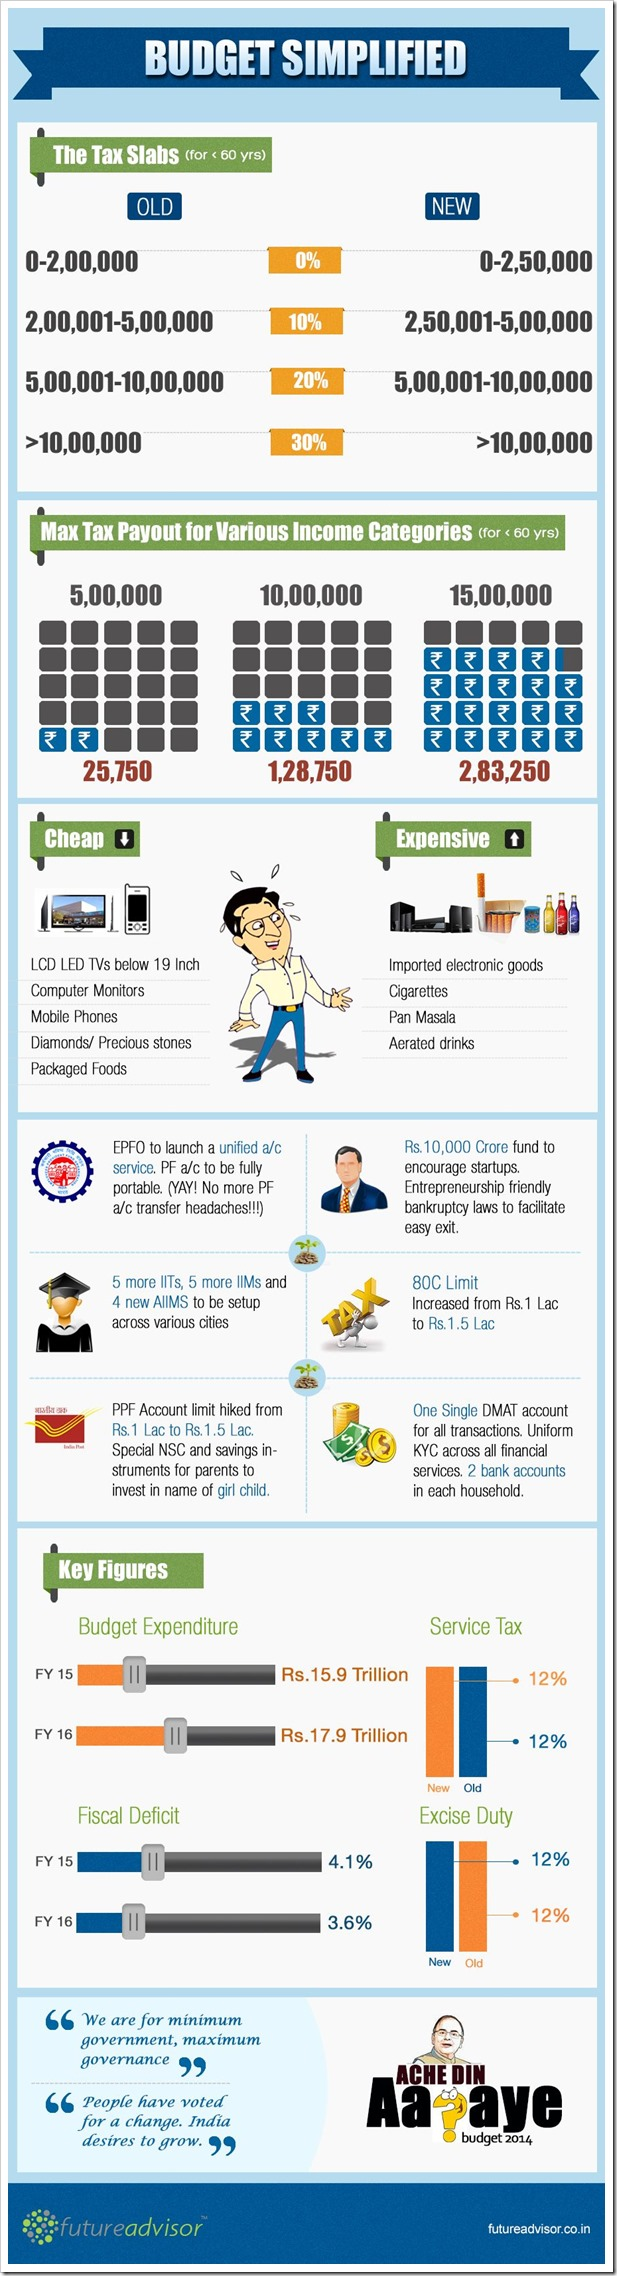 Budget2014-Simplified-Infographic